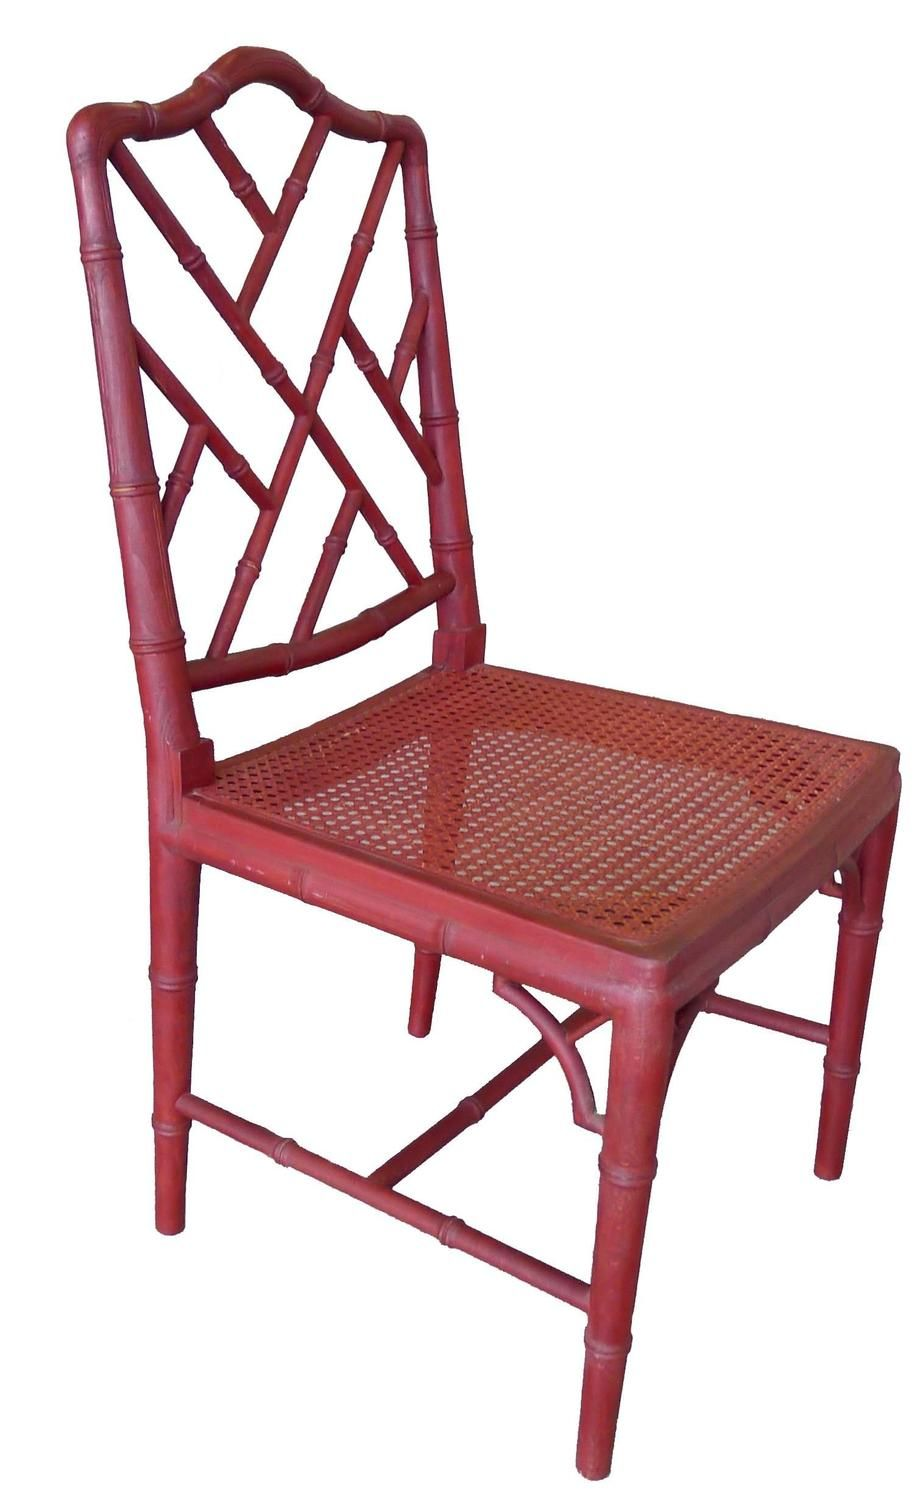 Custom modern chippendale wing chair by ethan allen at 1stdibs - 1960s Red Chinoiserie Bamboo Style Chair For Sale At 1stdibs